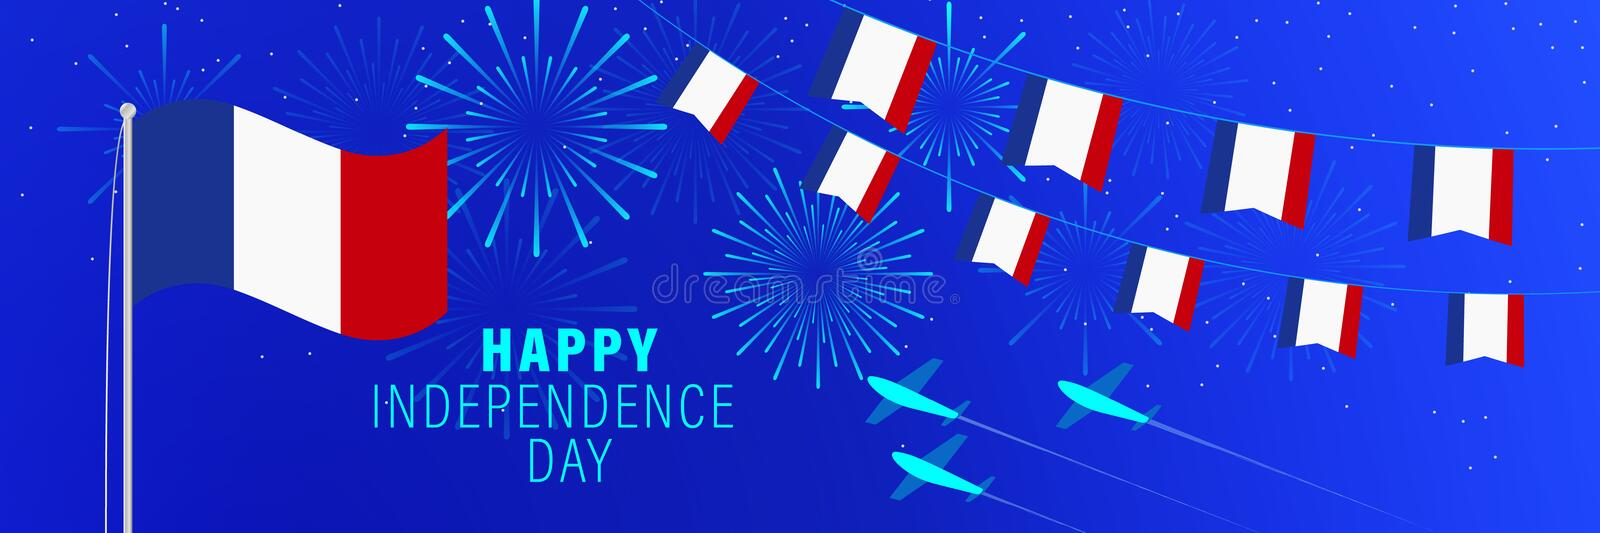 July 14 France Independence Day greeting card.  Celebration background with fireworks, flags, flagpole and text royalty free illustration